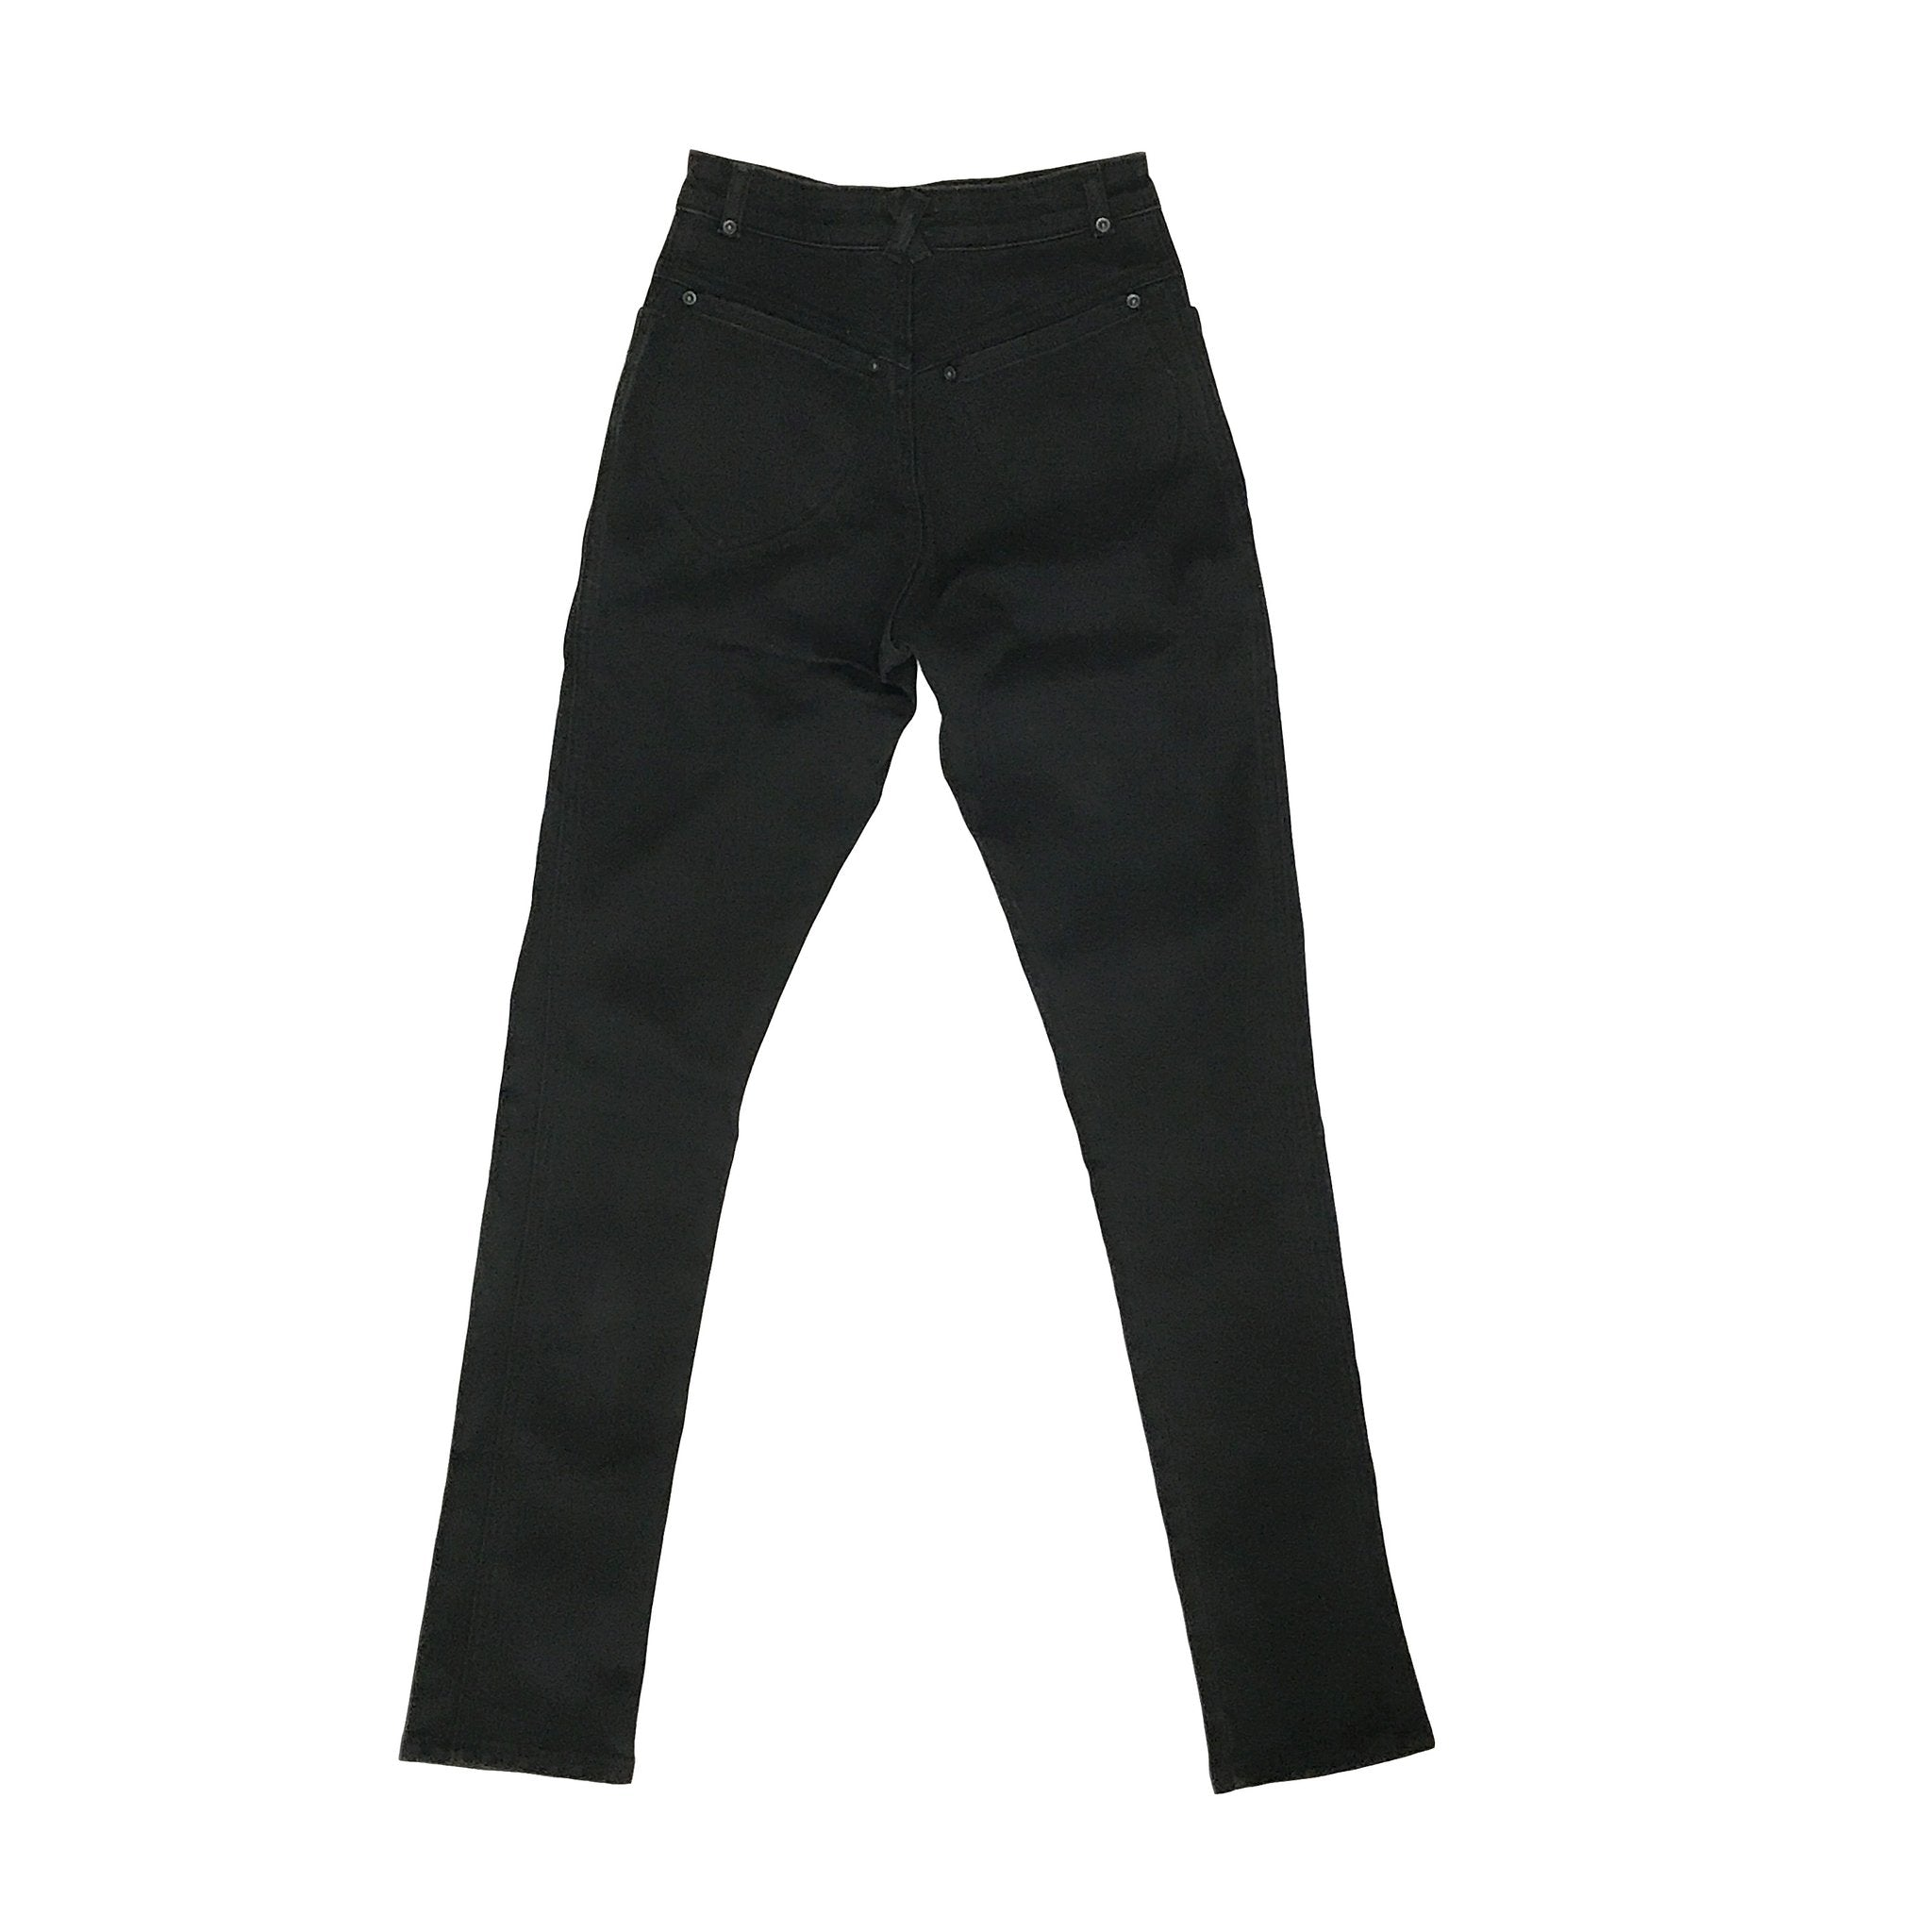 Judi Rosen New York • High Waisted Skinny Stretch Women's Jeans - Black